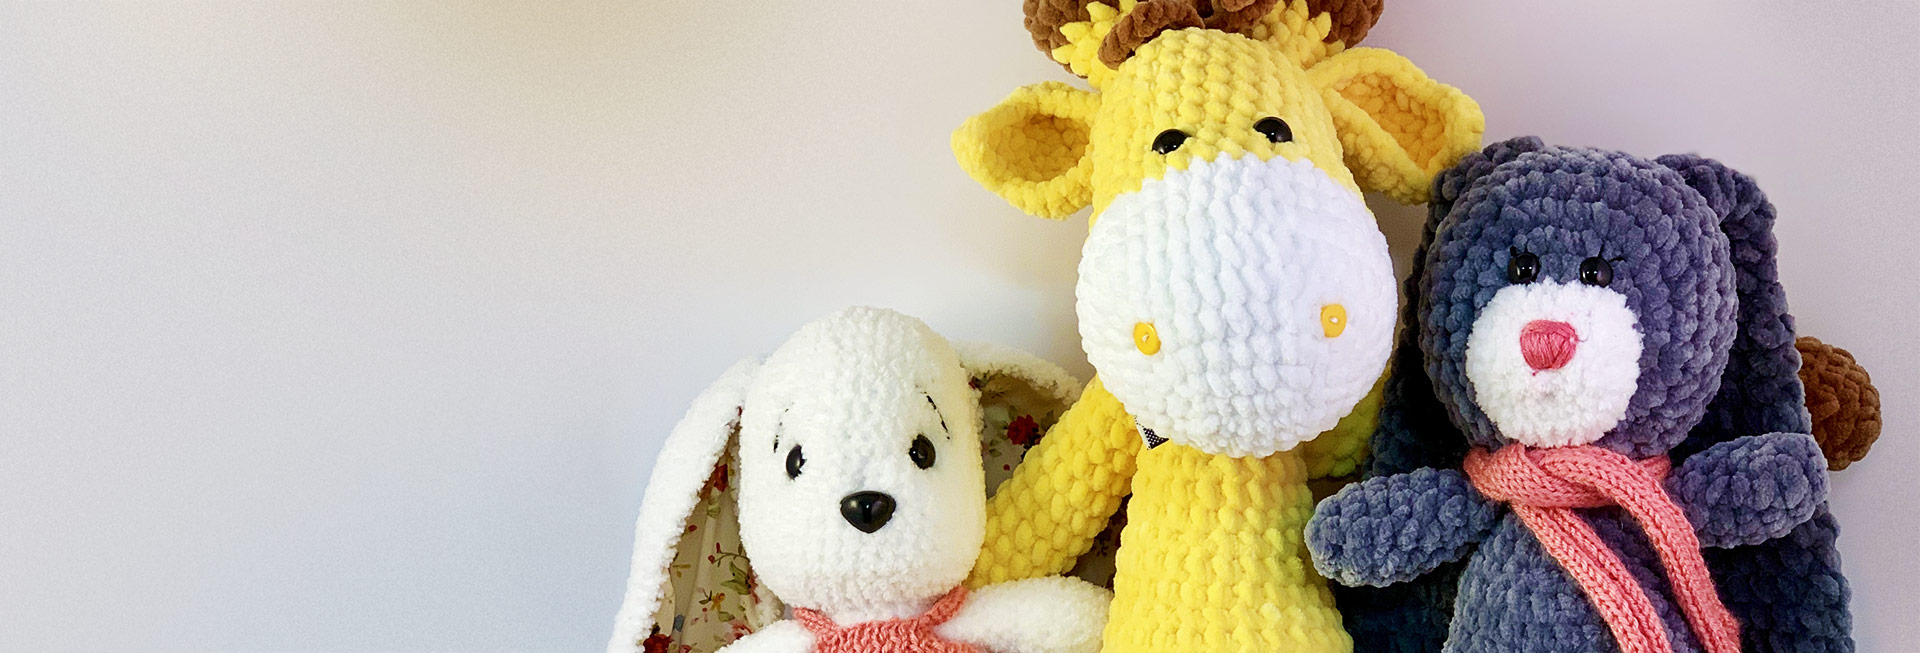 Soft Handmade Knitted Toys in Dubai